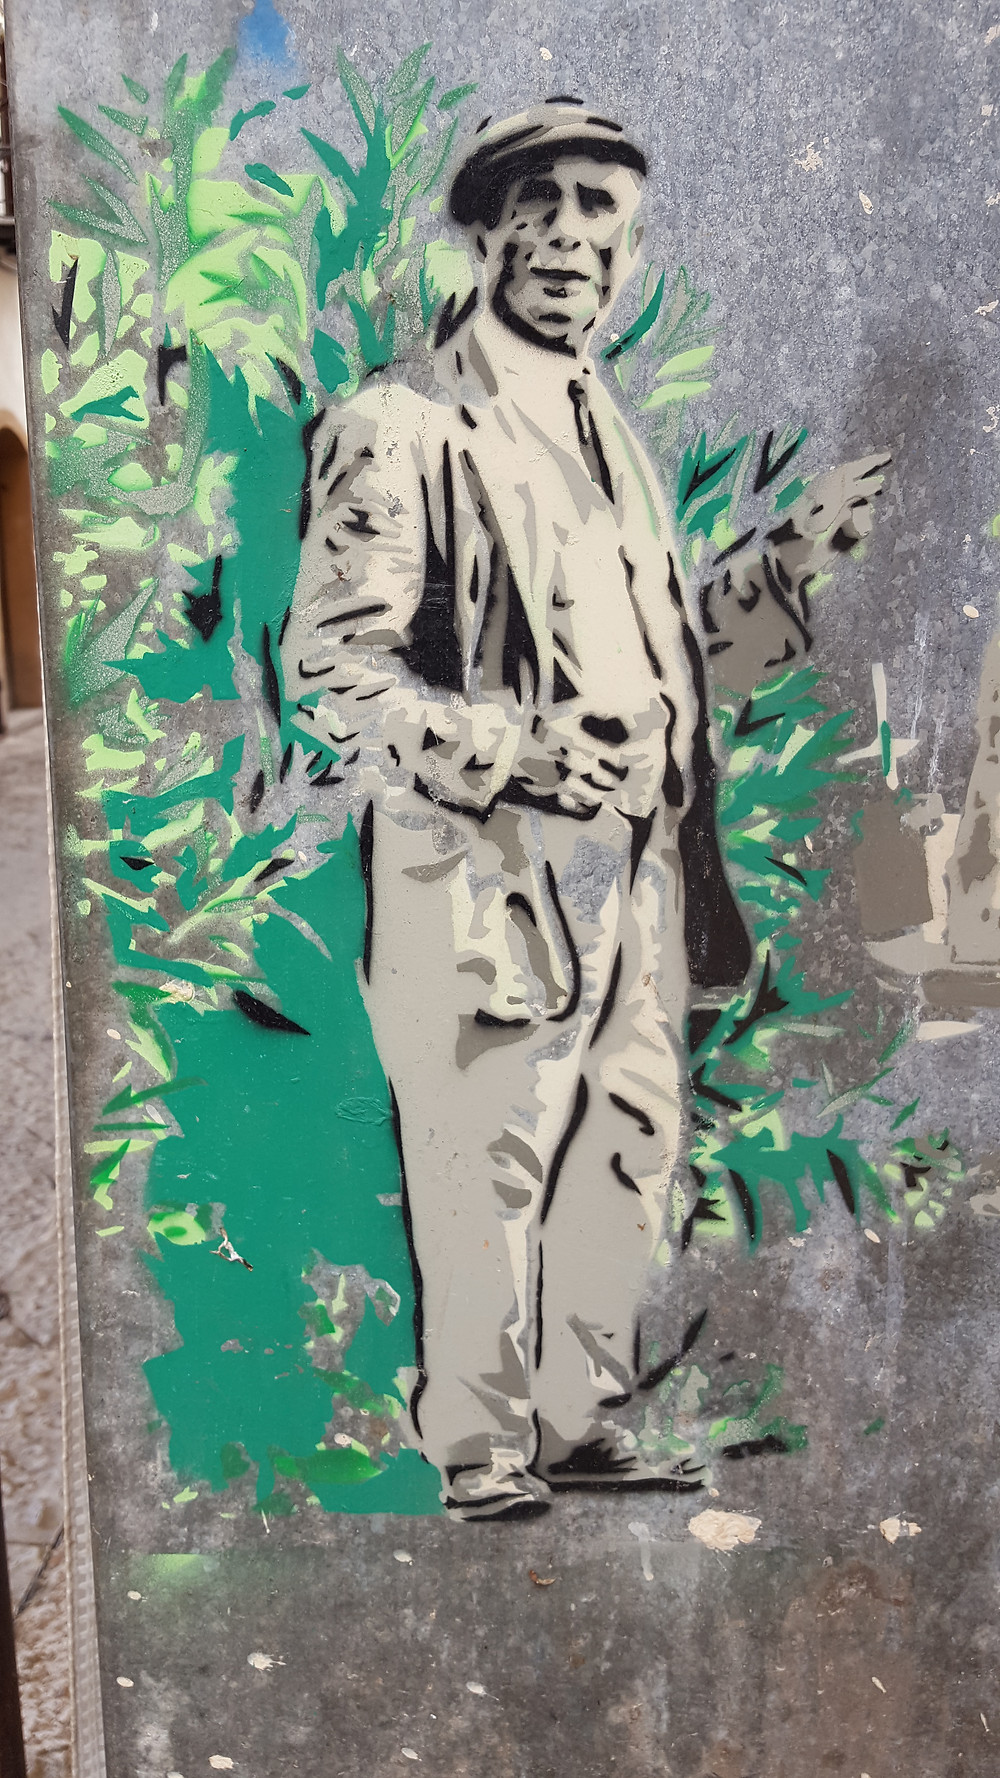 street art picture of an old Sicilian man with a hat